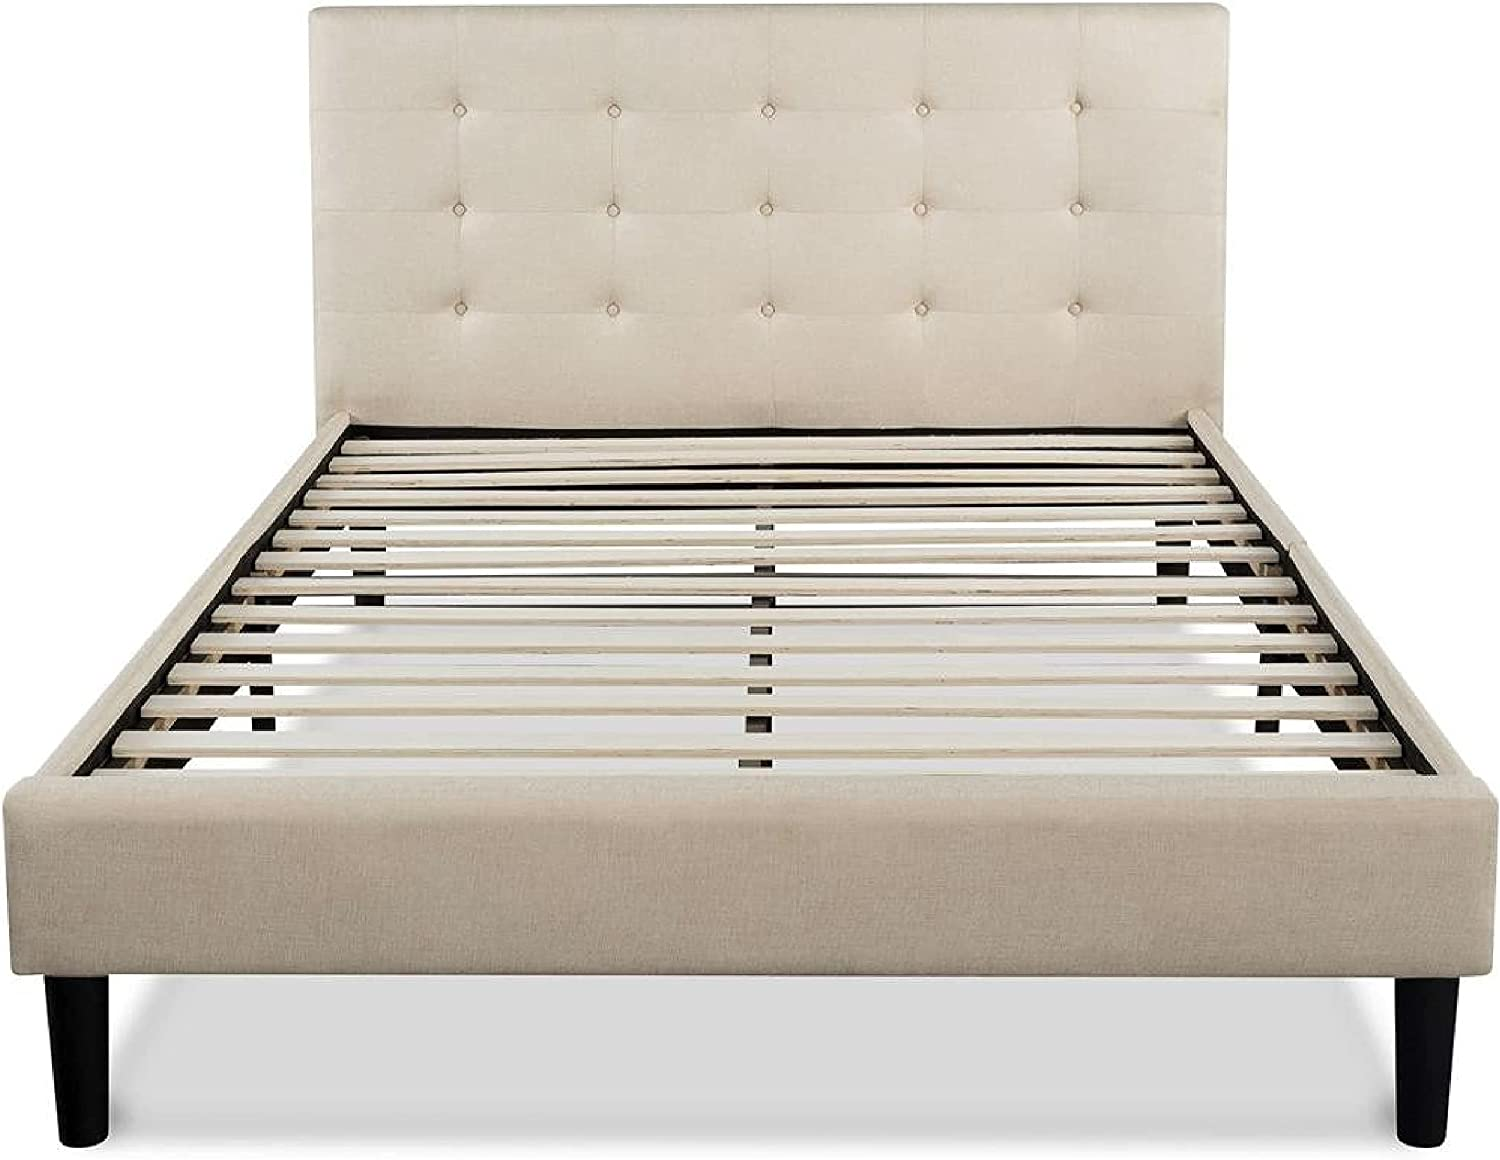 Platform Bed trust King size Frame with Butt Upholstered Max 87% OFF